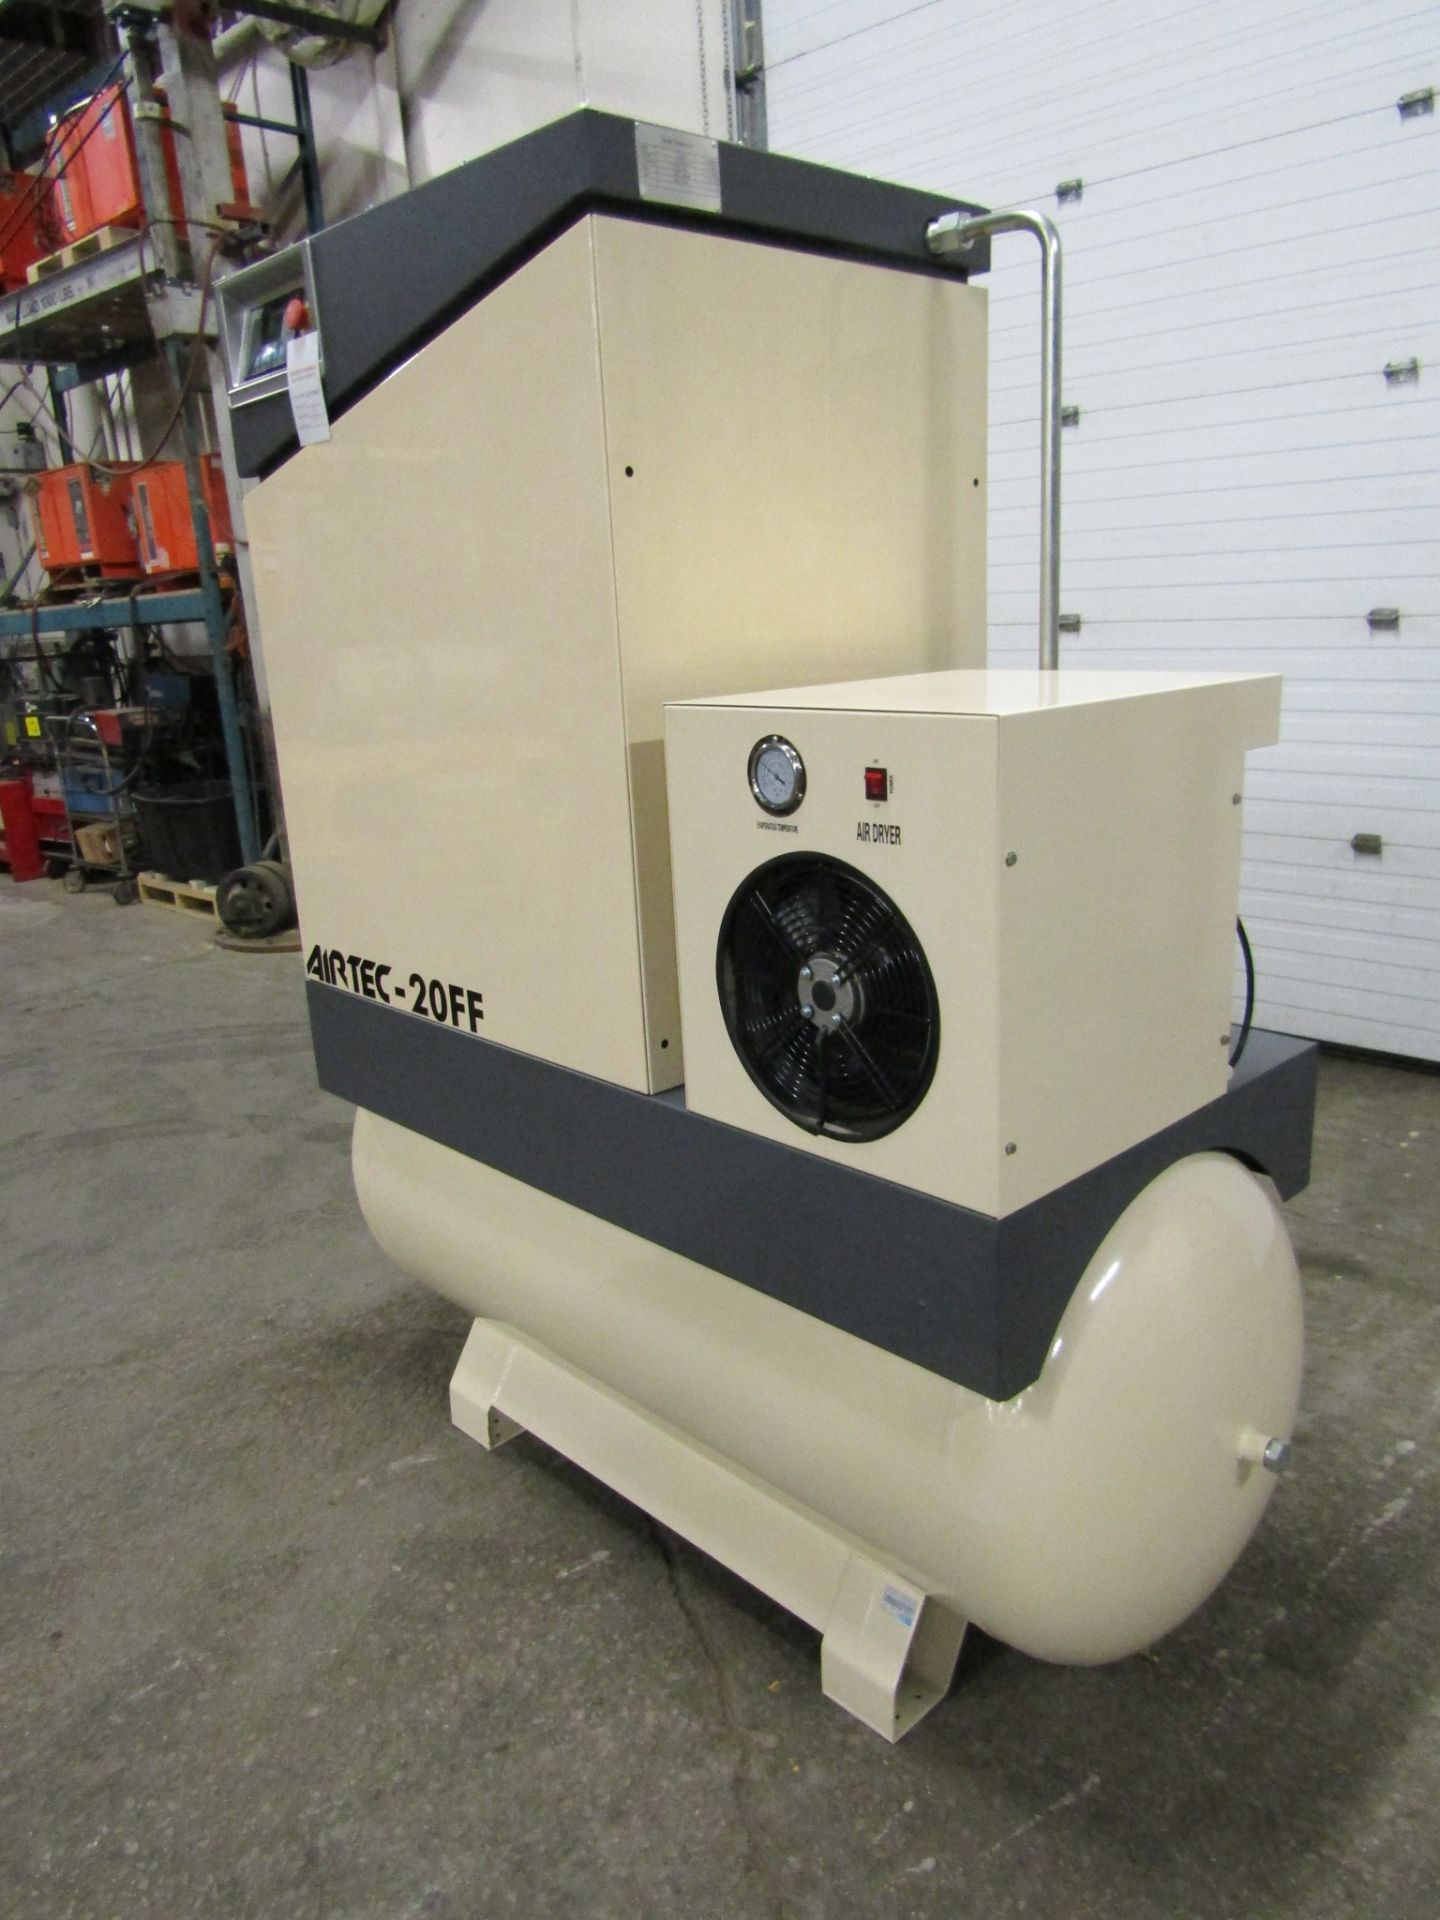 Airtec model 20FF - 20HP Air Compressor with built on DRYER - MINT UNUSED COMPRESSOR with 125 Gallon - Image 2 of 2